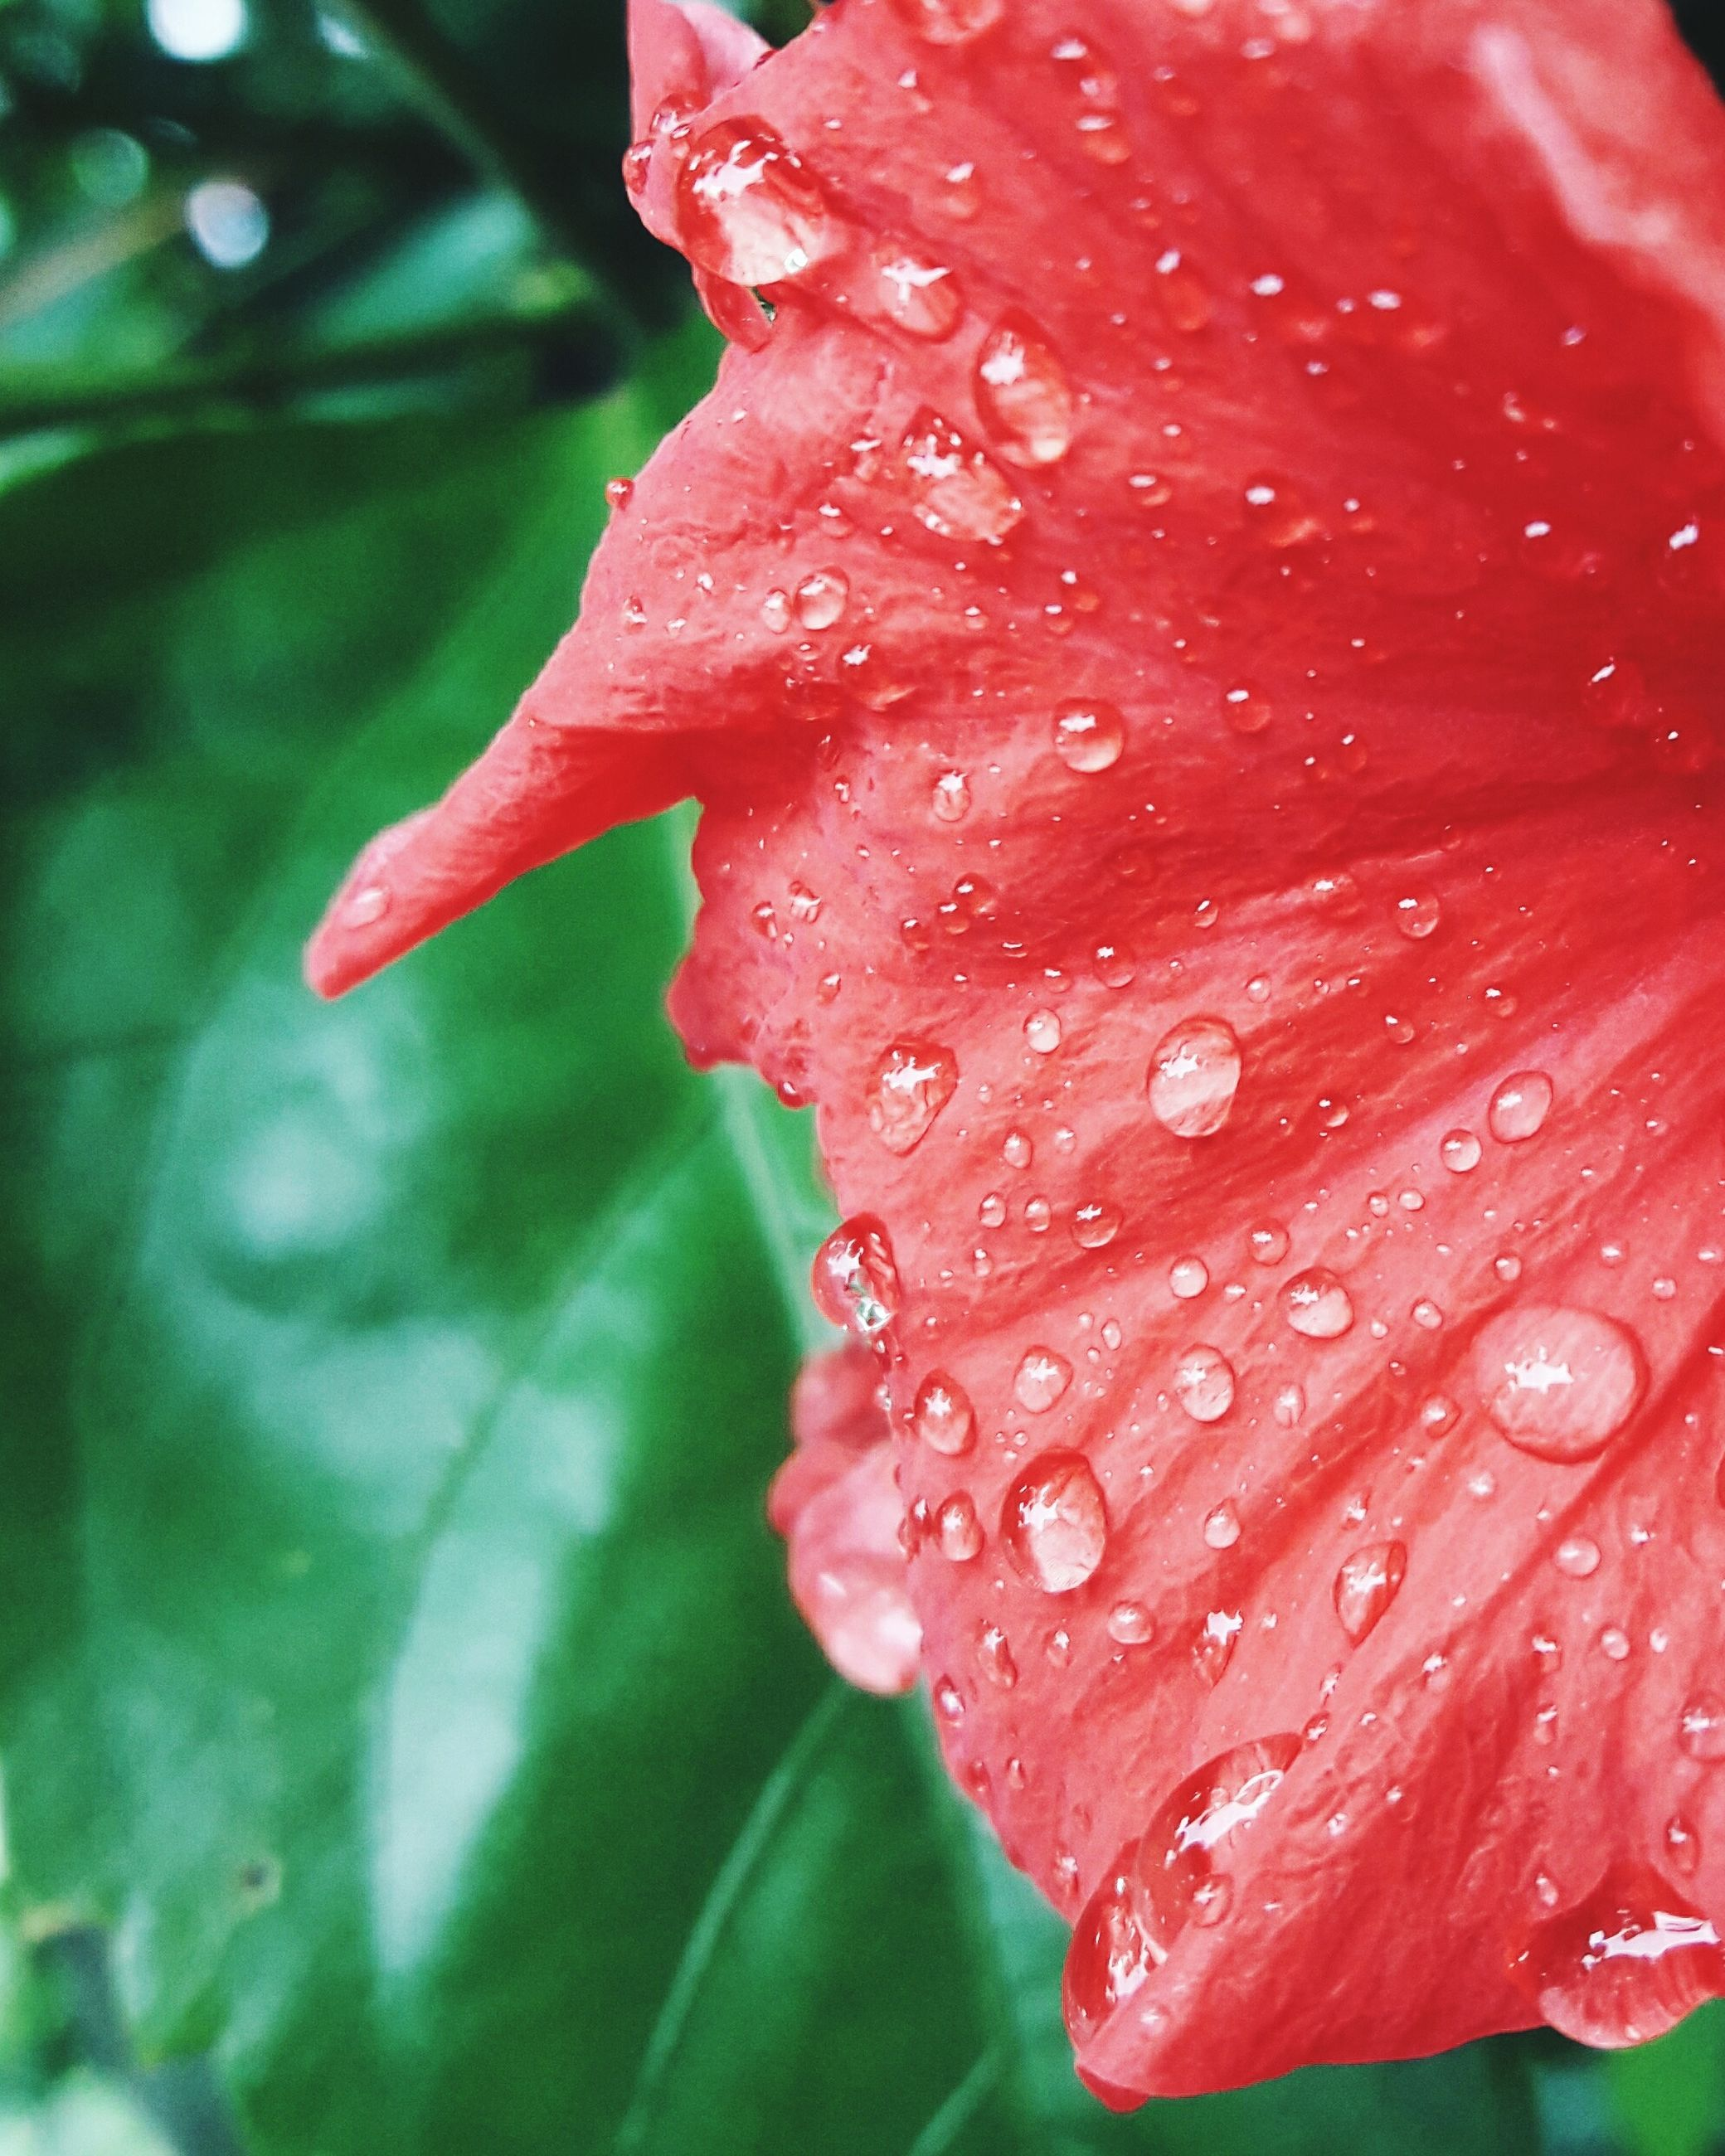 drop, red, petal, wet, growth, water, nature, flower, beauty in nature, freshness, close-up, fragility, flower head, raindrop, day, leaf, plant, blooming, no people, outdoors, purity